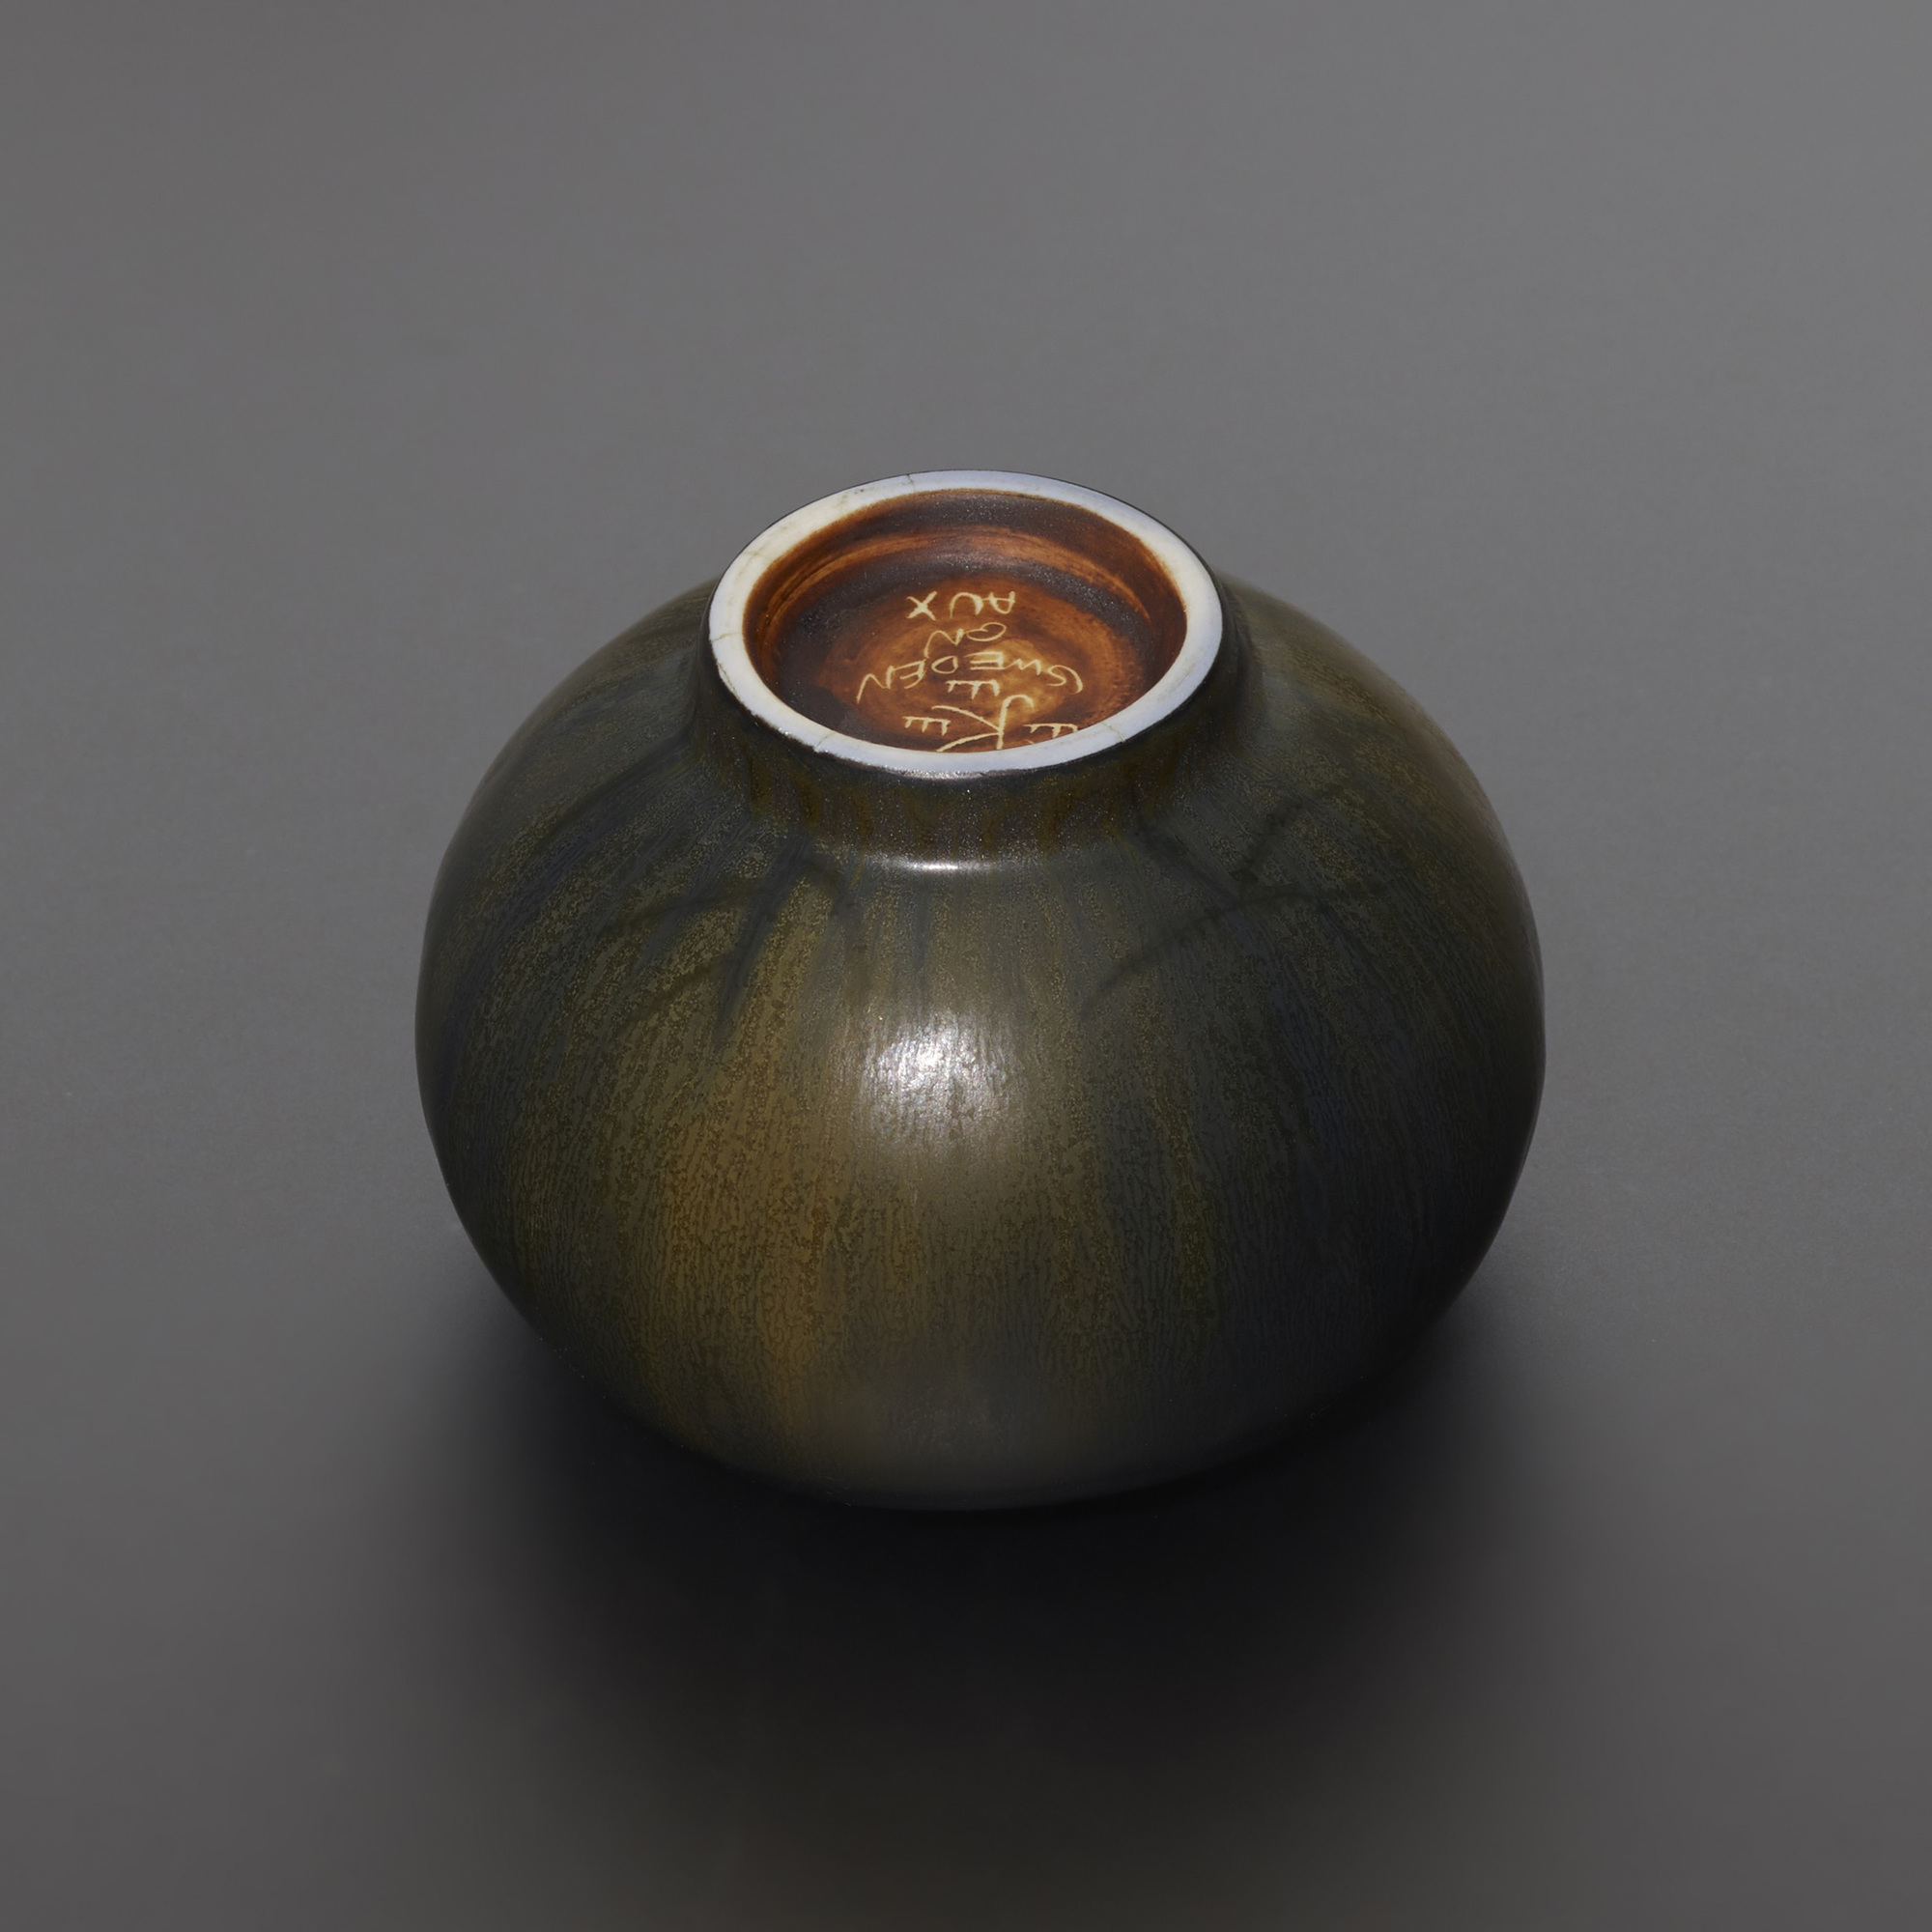 214: Gunnar Nylund / collection of eleven vases (3 of 3)